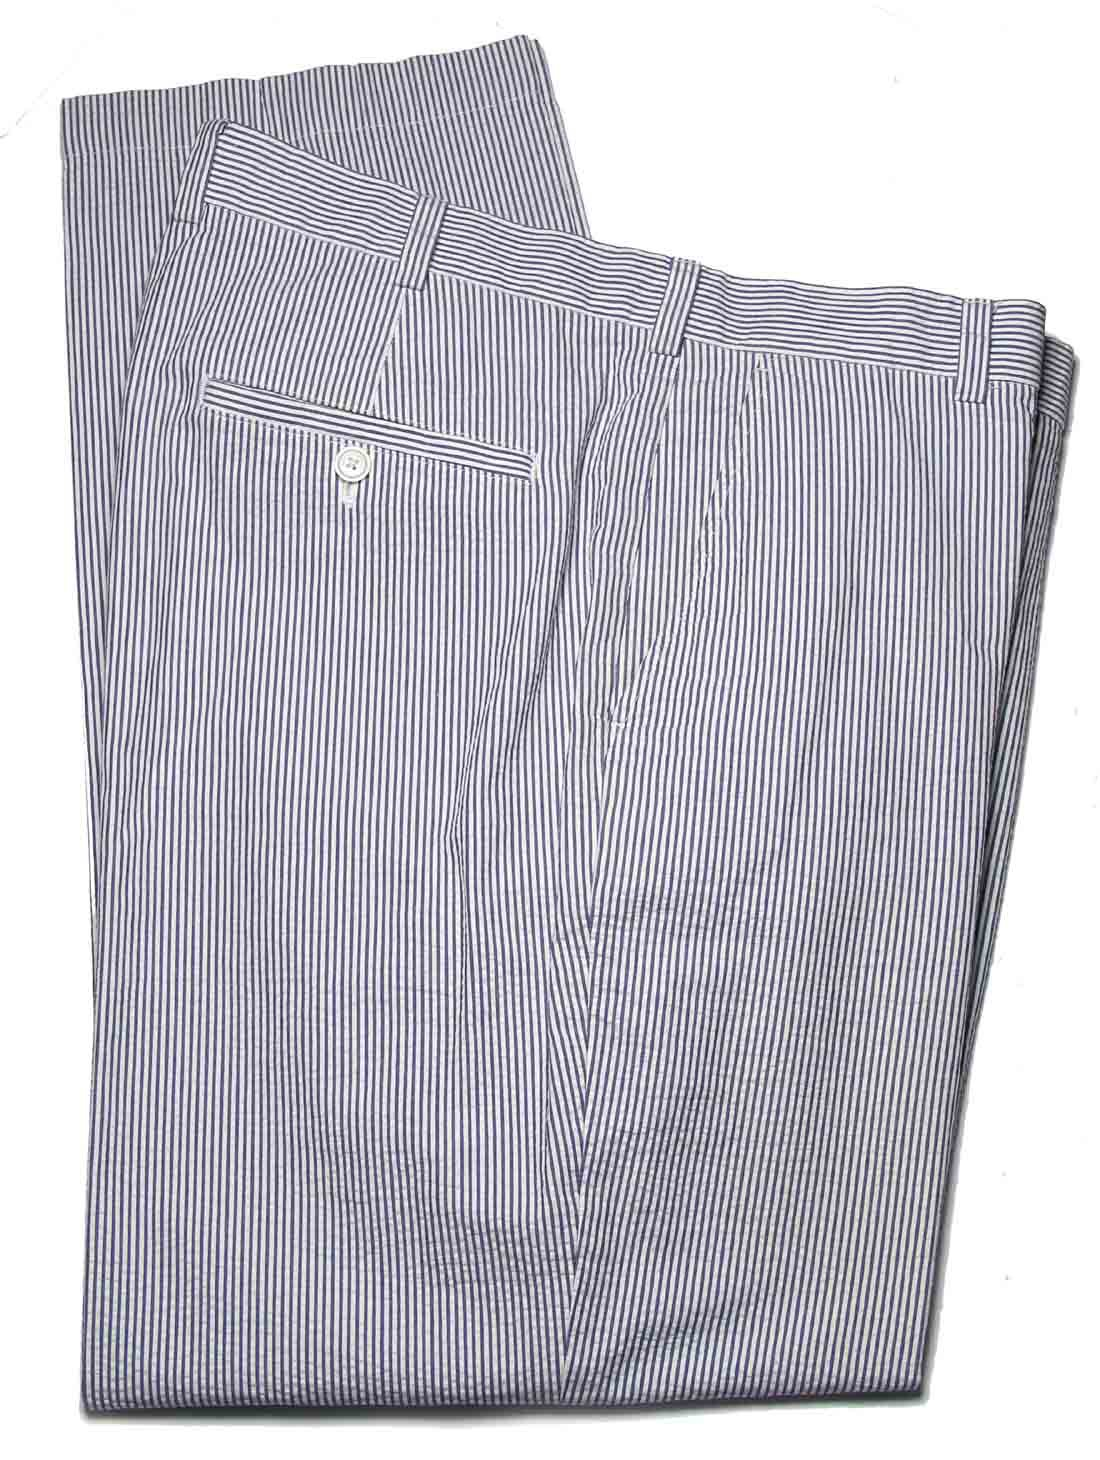 Brooks Brothers Seersucker Pants Blue White Striped Clark Straight Fit Men's Size 38 X 32